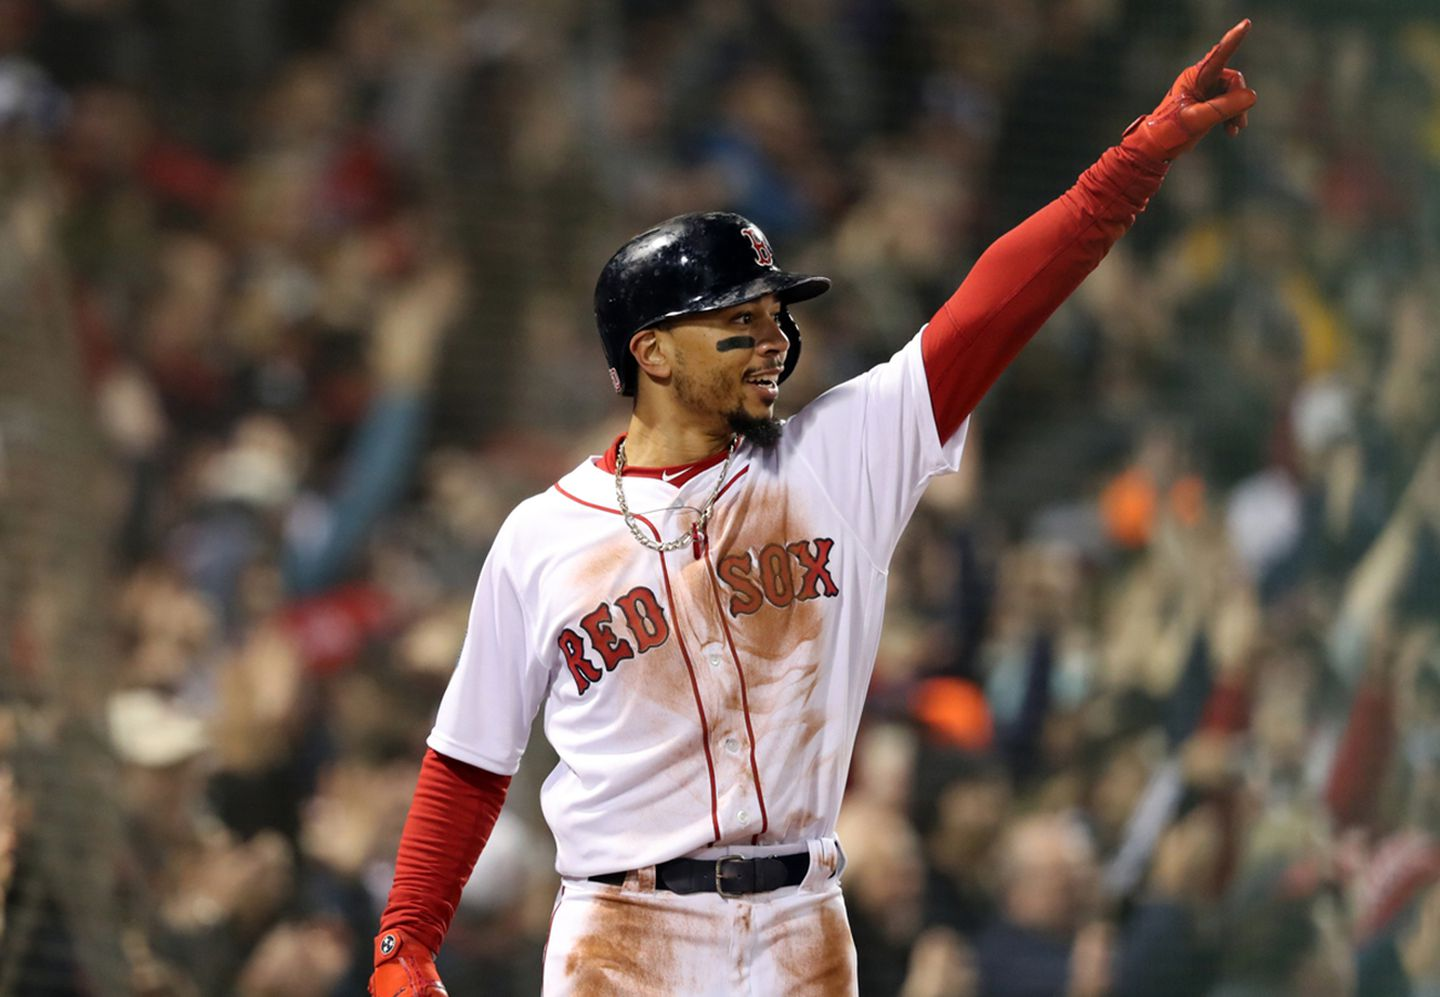 Mookie Betts of the Boston Red Sox in a game at Fenway Park in Boston. Betts was acquired by the Los Angeles Dodgers (along with David Price) in a trade on Feb. 10, 2020.